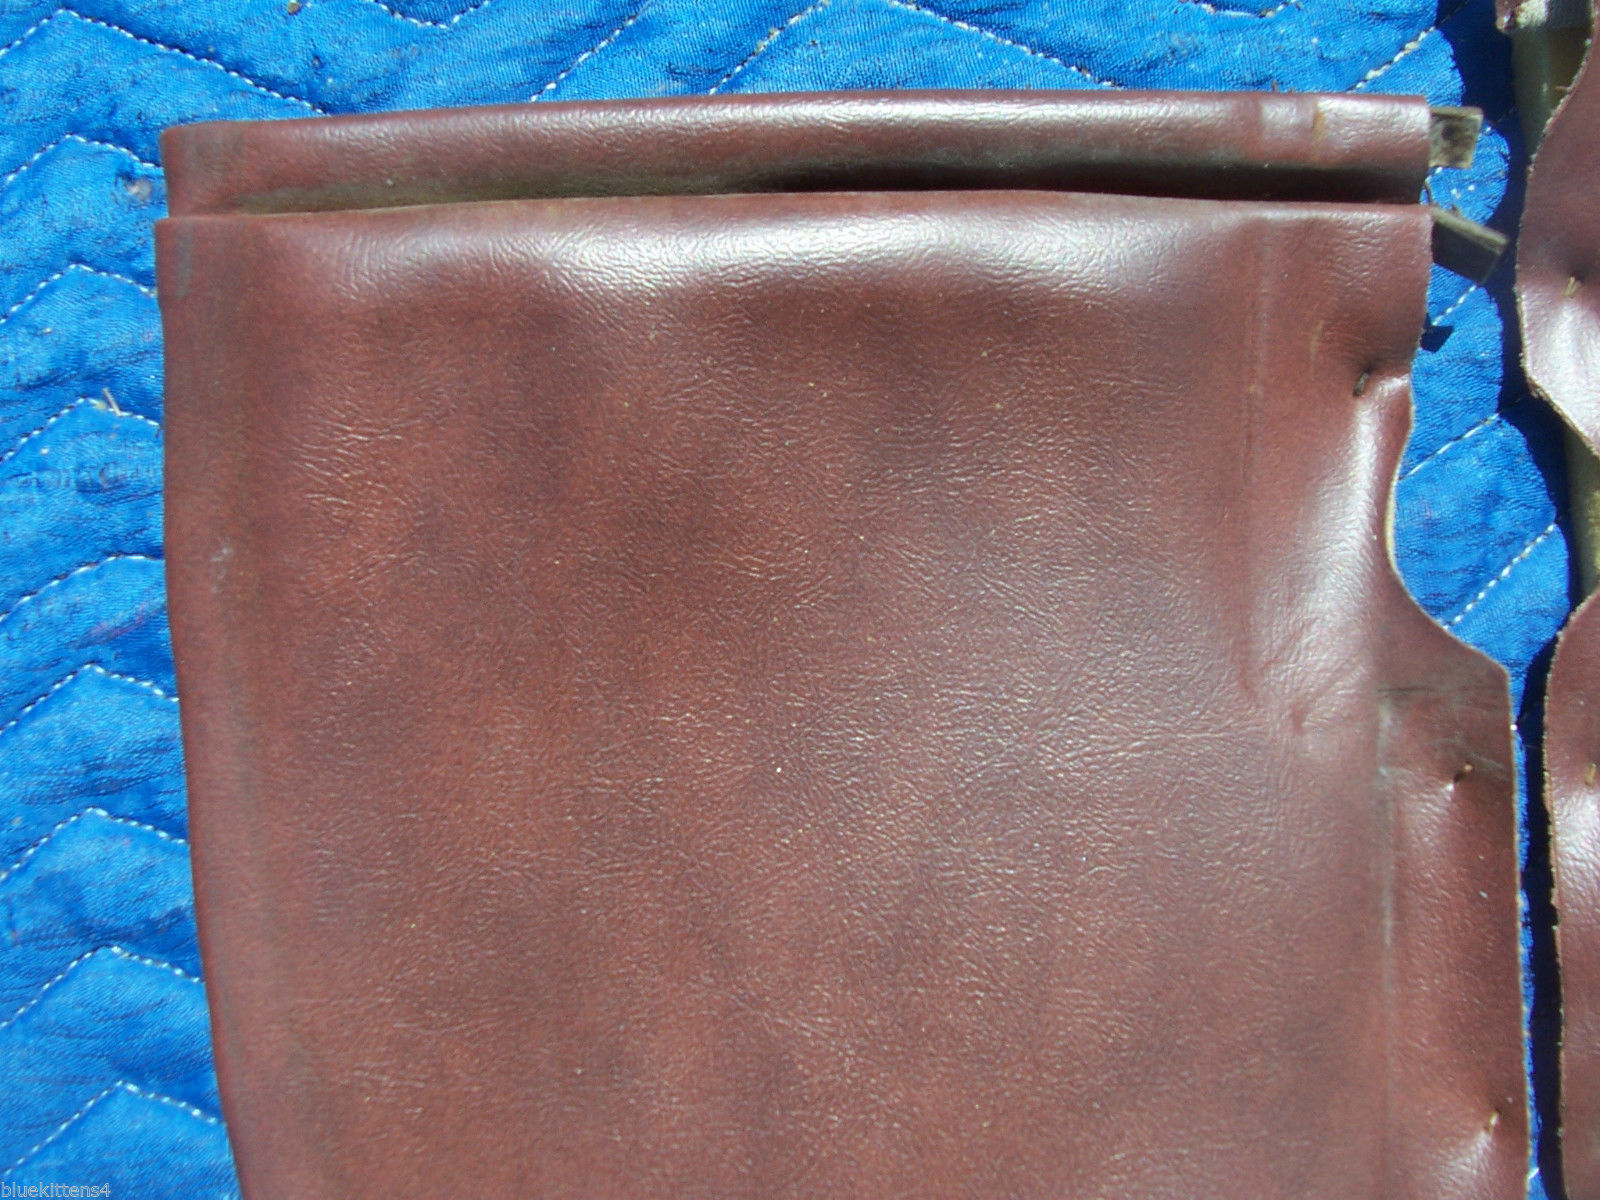 1979 COUPE DEVILLE LEFT DOOR PANEL PADS OEM USED GENUINE GM CADILLAC PART 1978 image 4